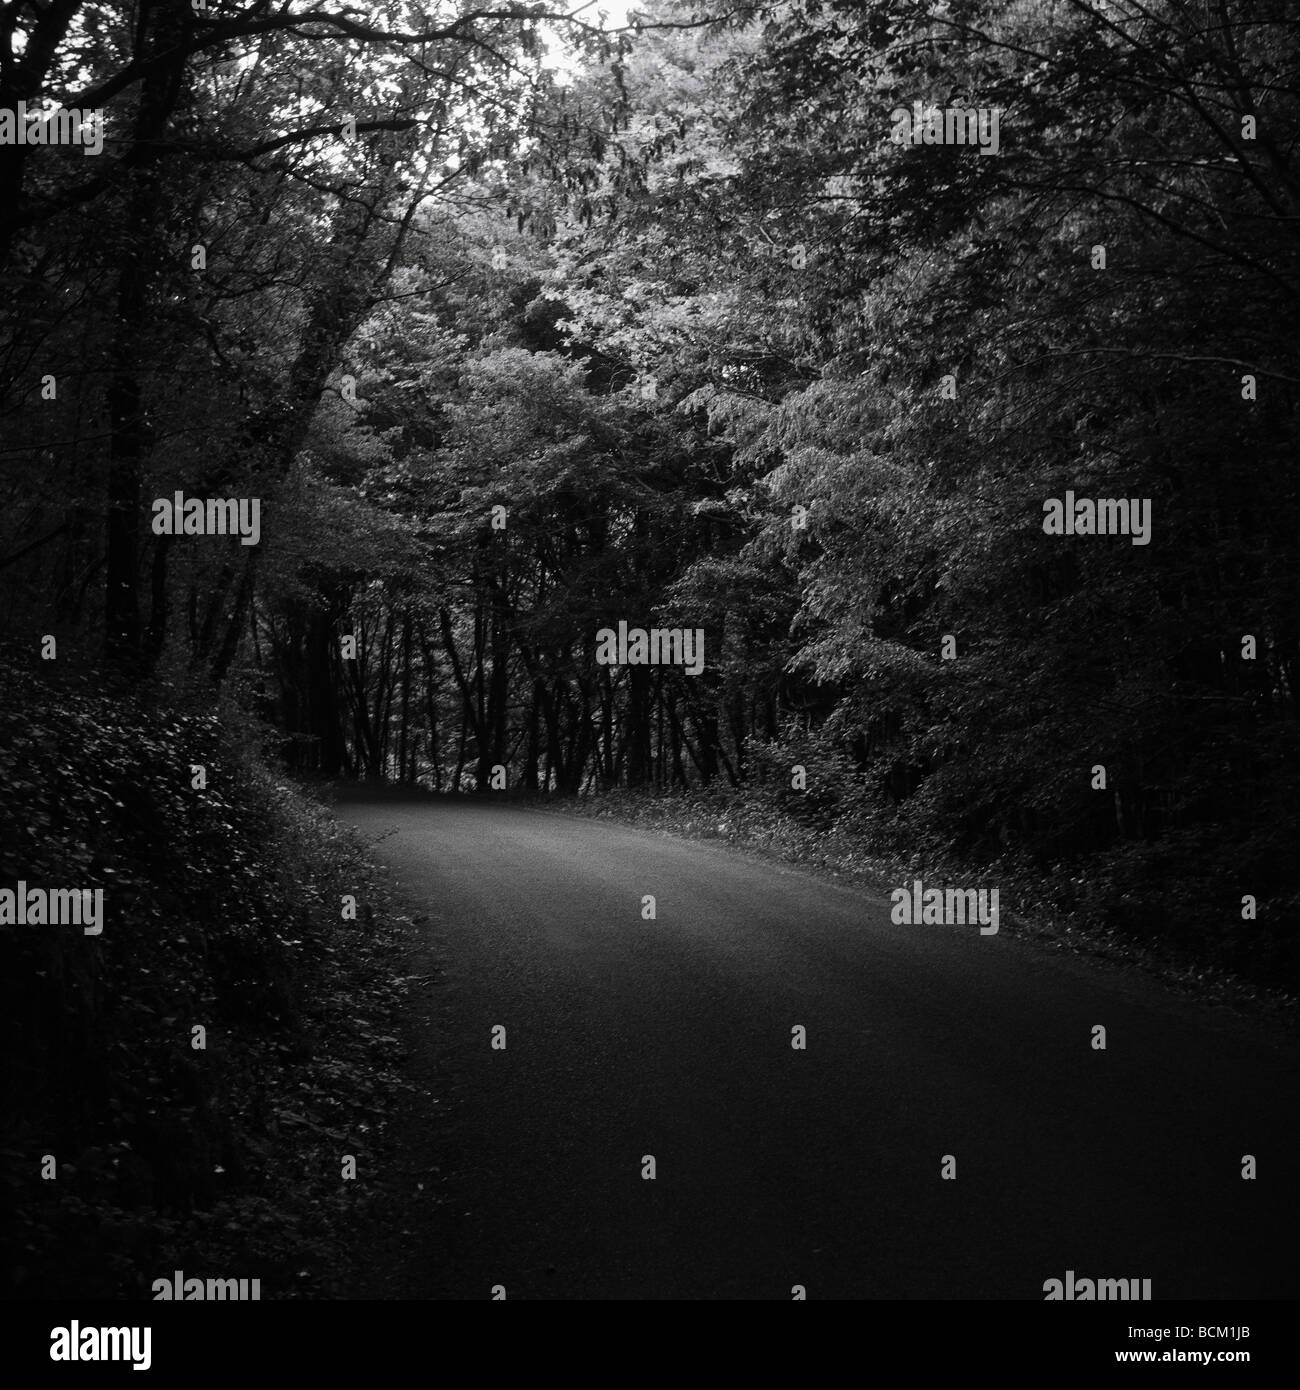 Empty road through woods, black and white - Stock Image